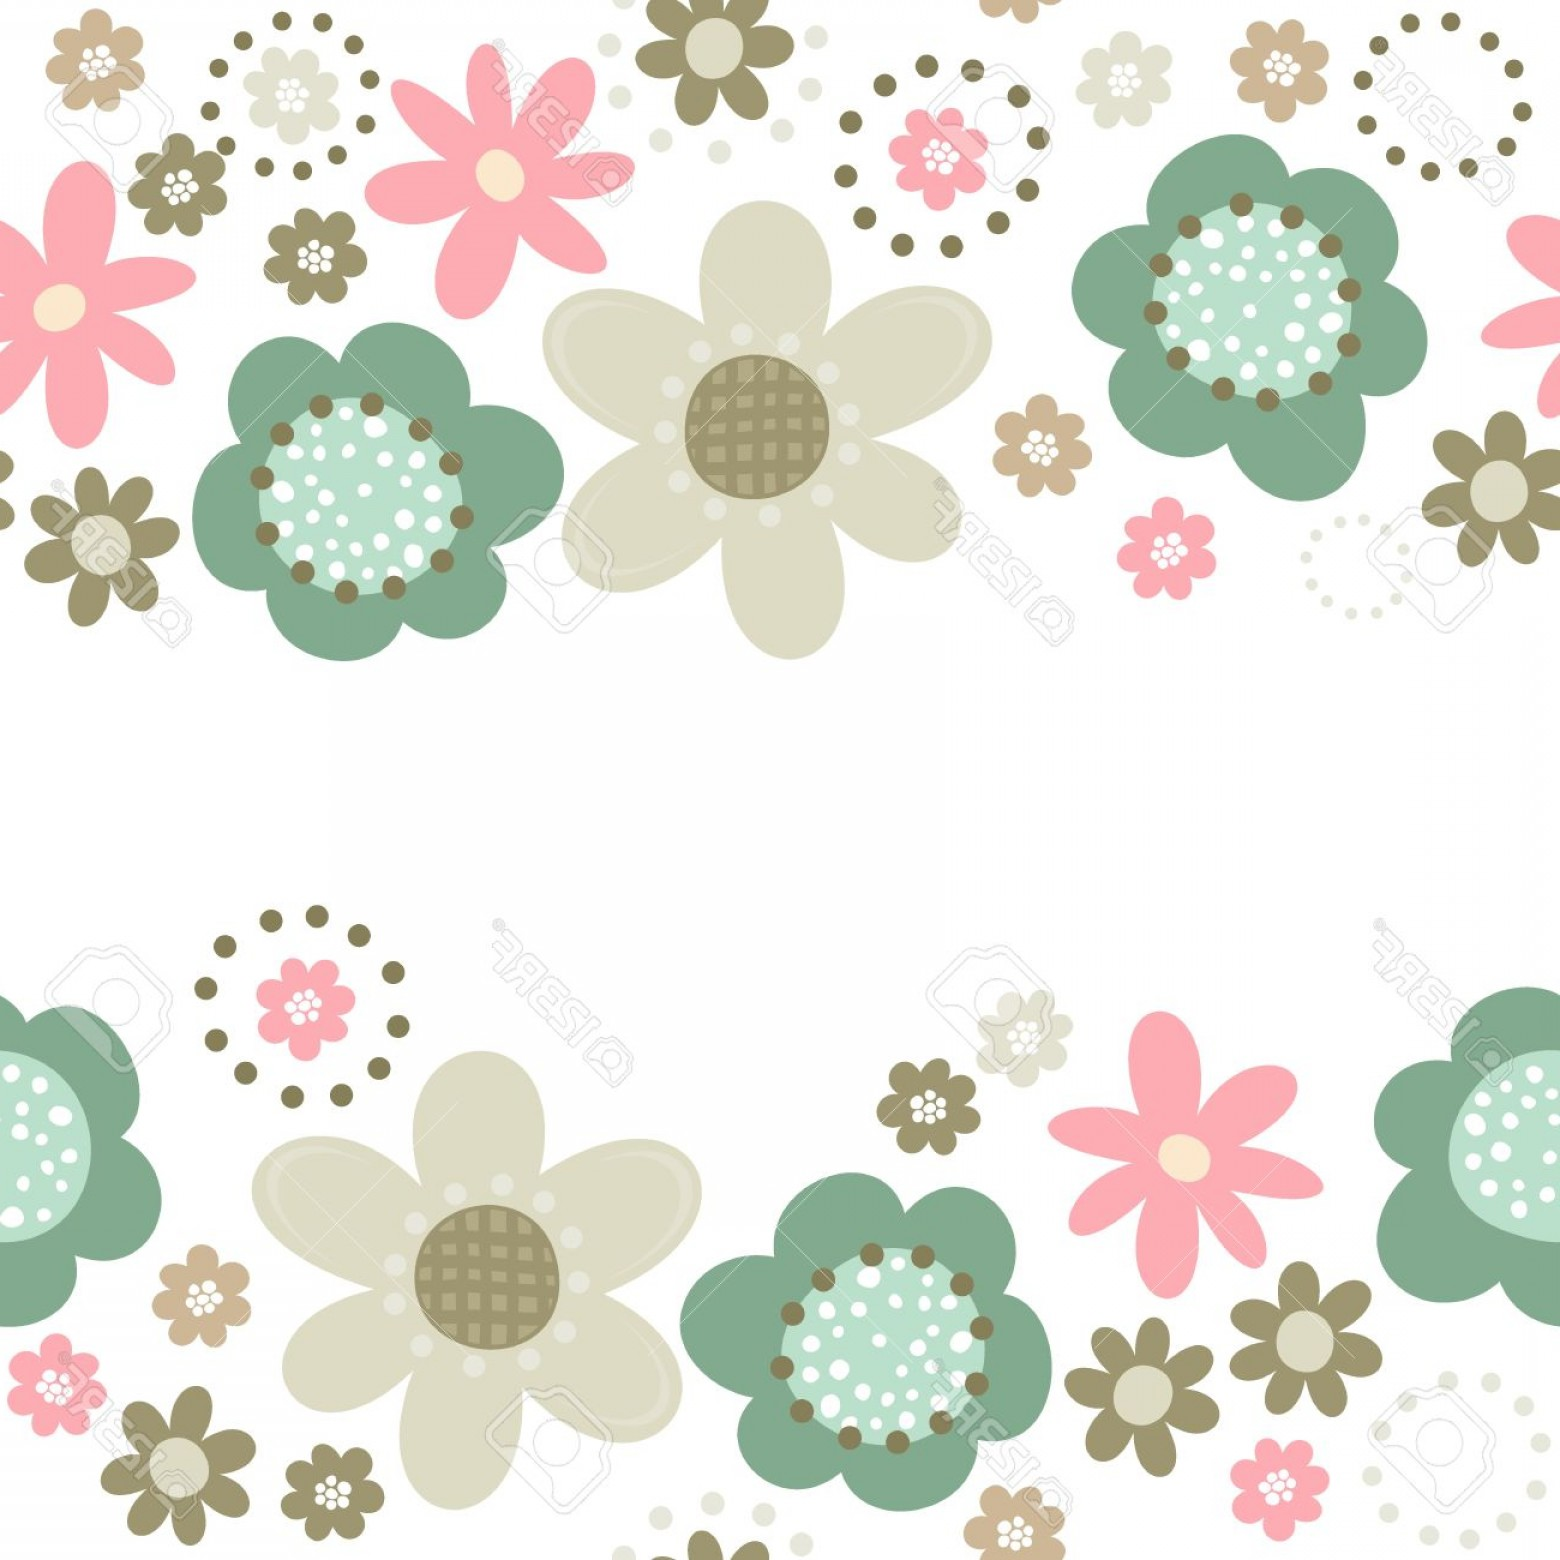 Turquoise Flower Vector: Photostock Vector Colorful Pink Turquoise Beige Brown Little Flowers Romantic Botanical Seamless Double Horizontal Bor